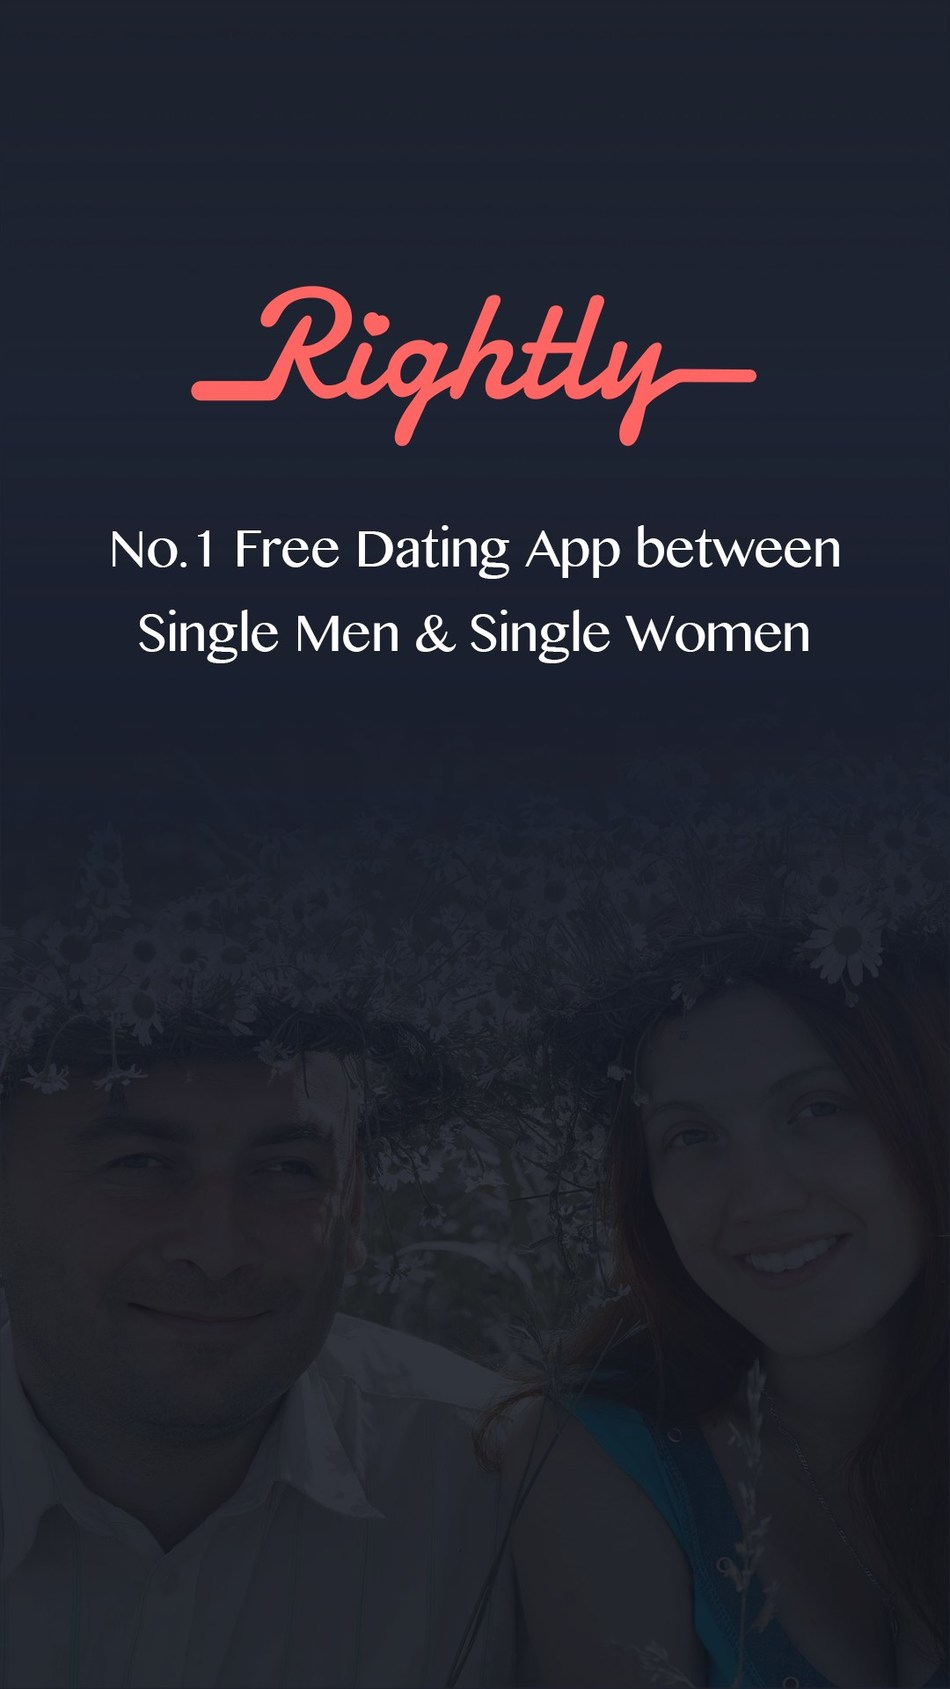 Rightly - Free Dating App For Straight Singles